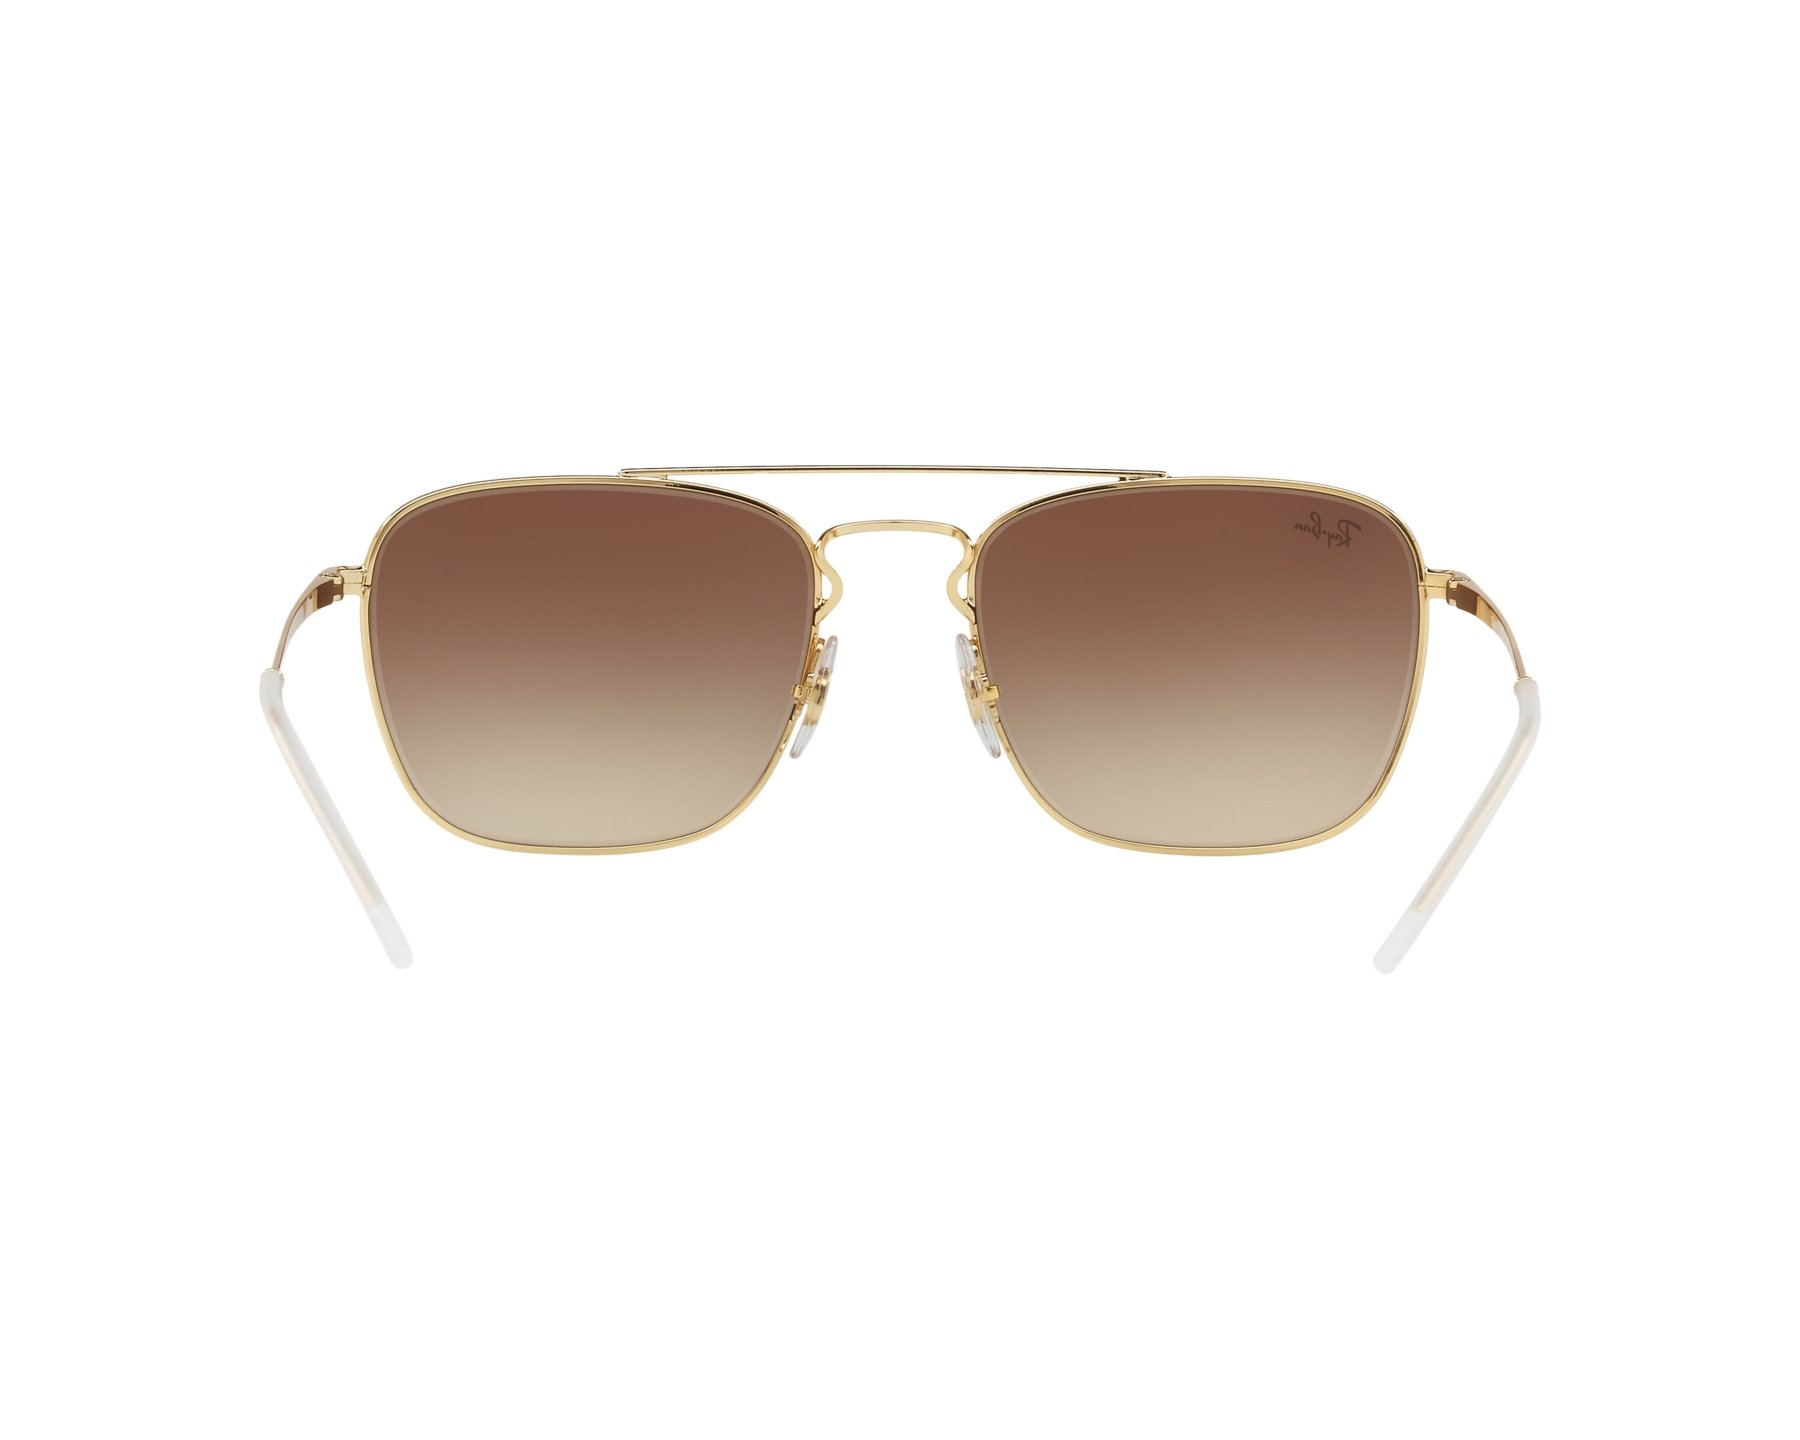 Ray-Ban RB3588 905513 55-19 owiaKN